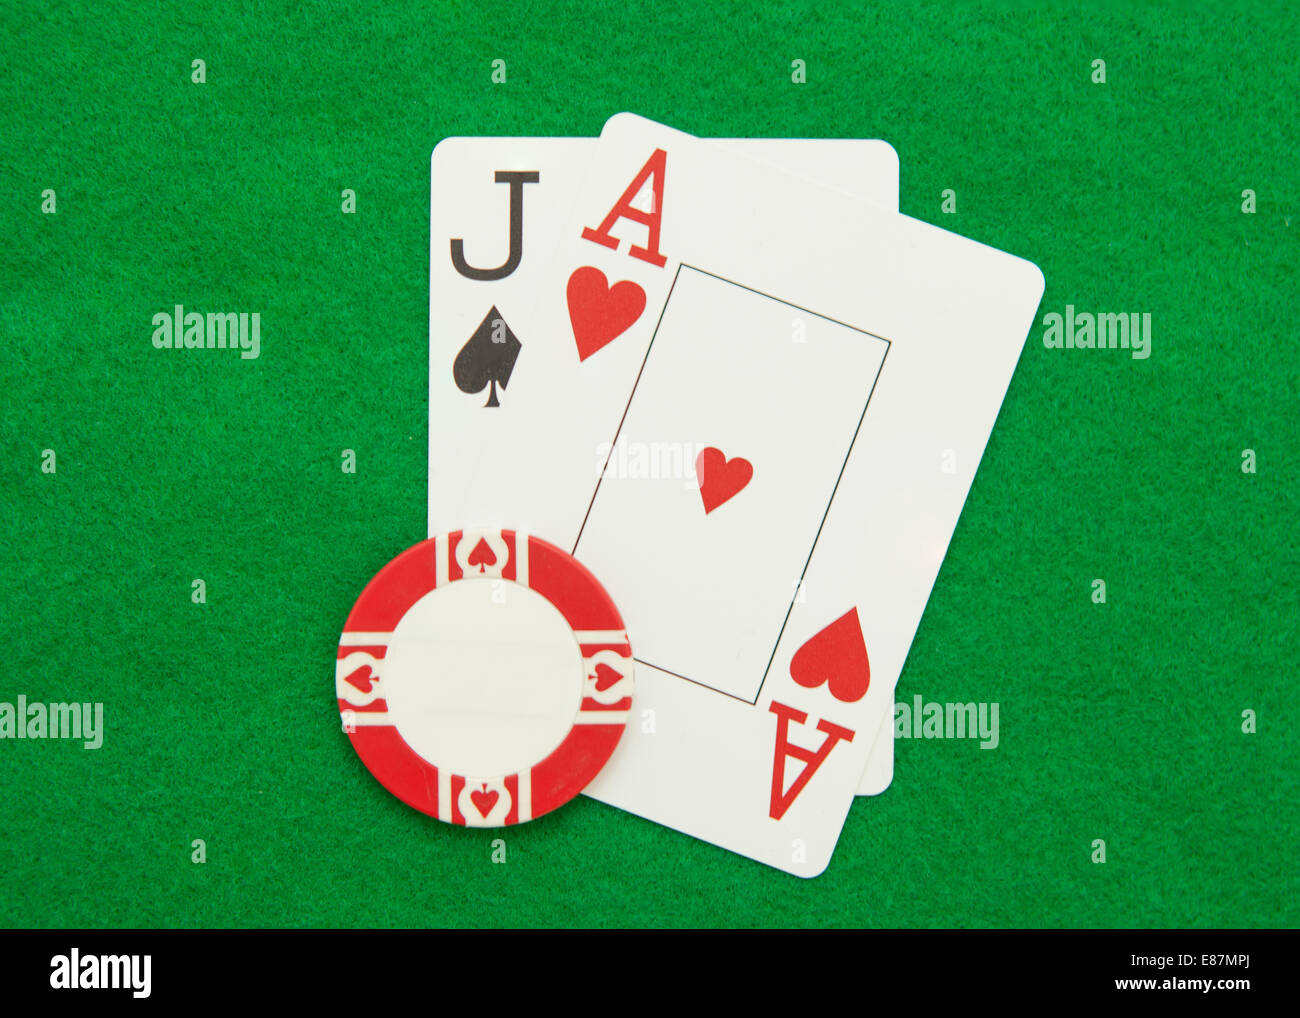 Blackjack hand with casino chip on green casino table - Stock Image